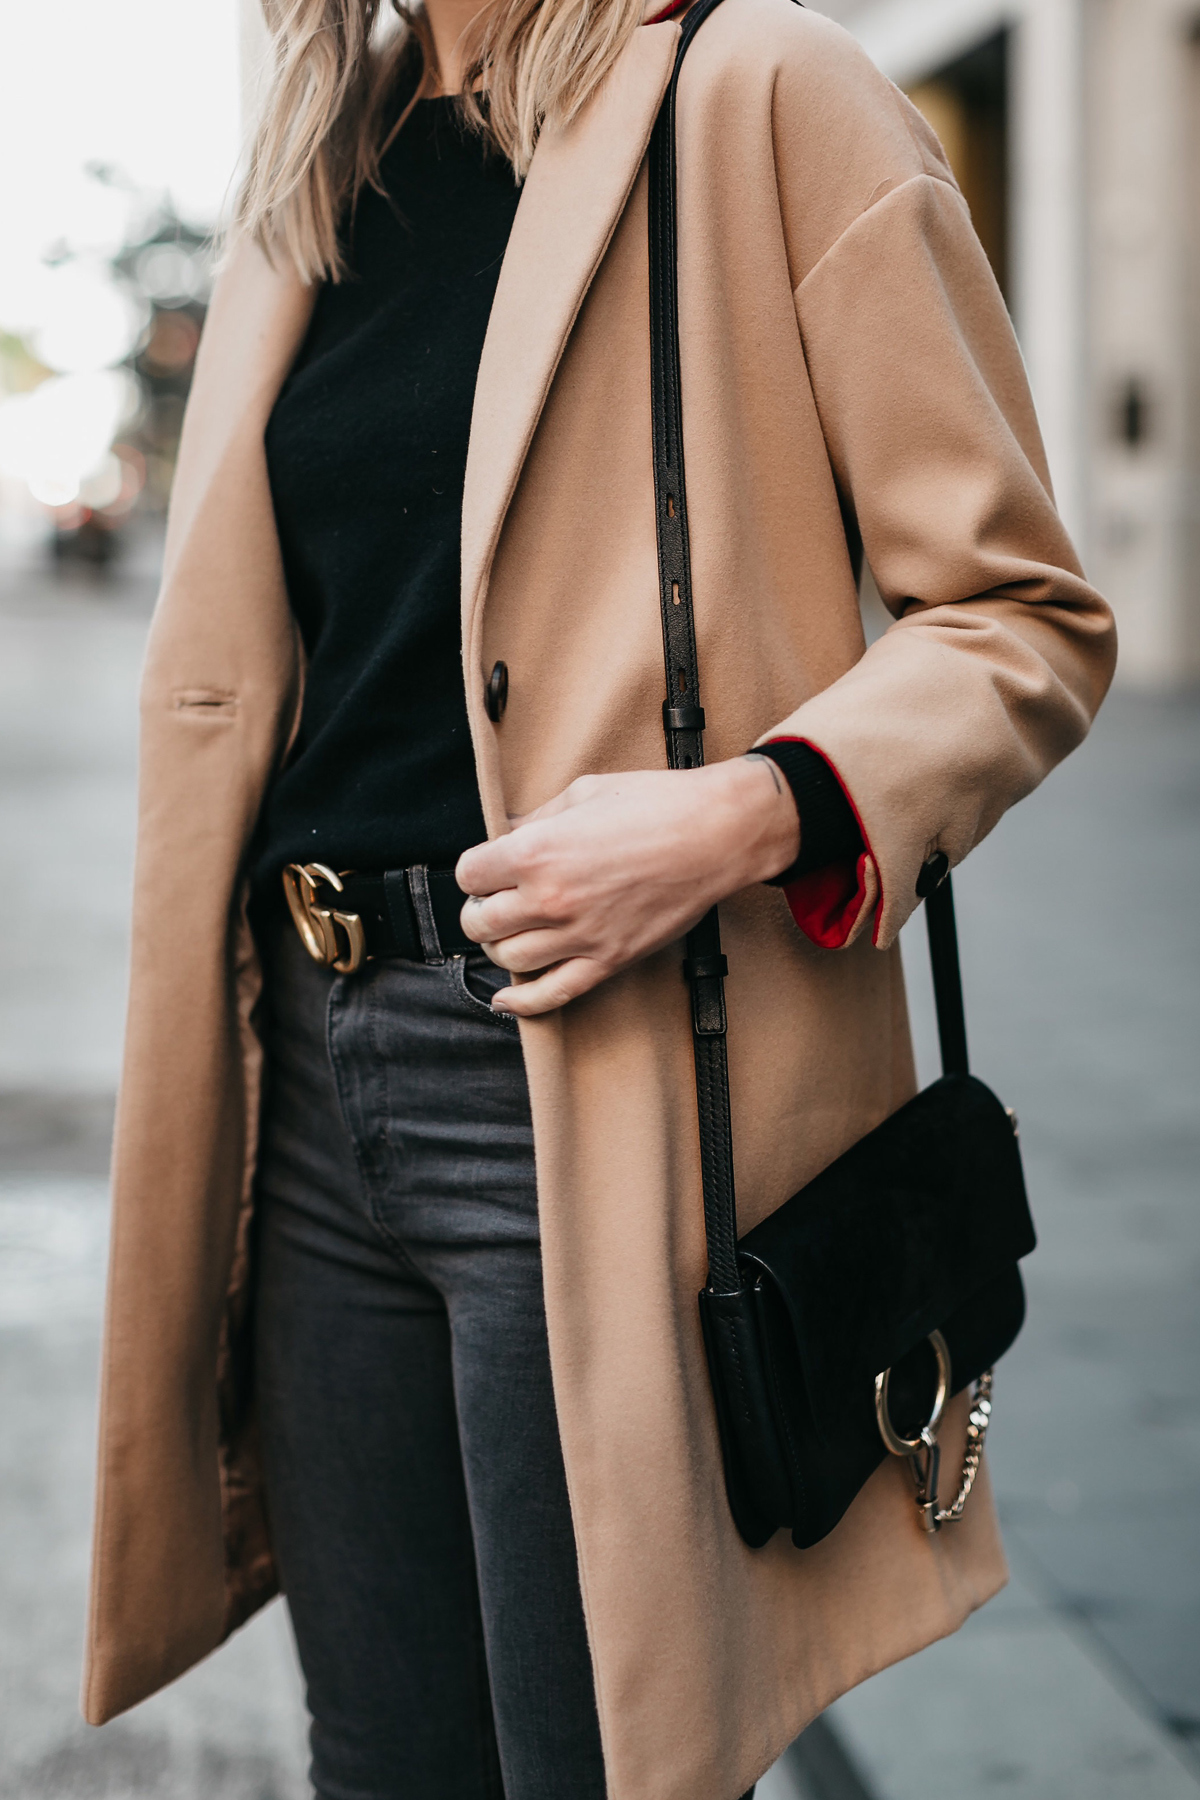 Topshop Camel Coat Chloe Faye Black Handbag Gucci Marmont Belt Fashion Jackson Dallas Blogger Fashion Blogger Street Style